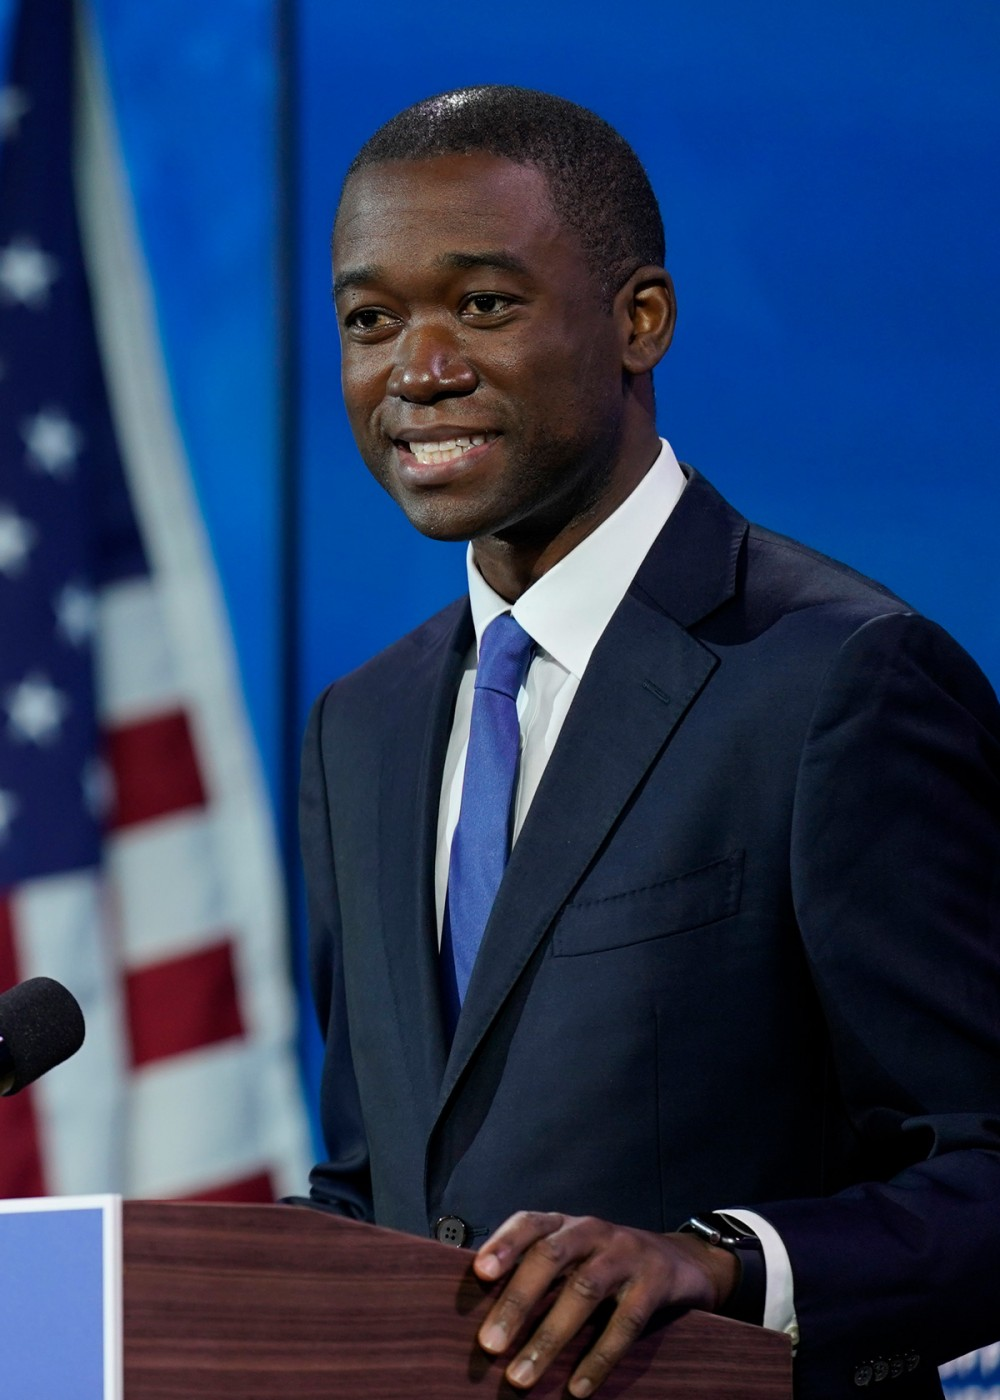 Wally Adeyemo who President-elect Joe Biden nominated to serve as Deputy Secretary of the Treasury speaks at The Queen theater, Tuesday, Dec. 1, 2020, in Wilmington, Del. (AP Photo/Andrew Harnik)